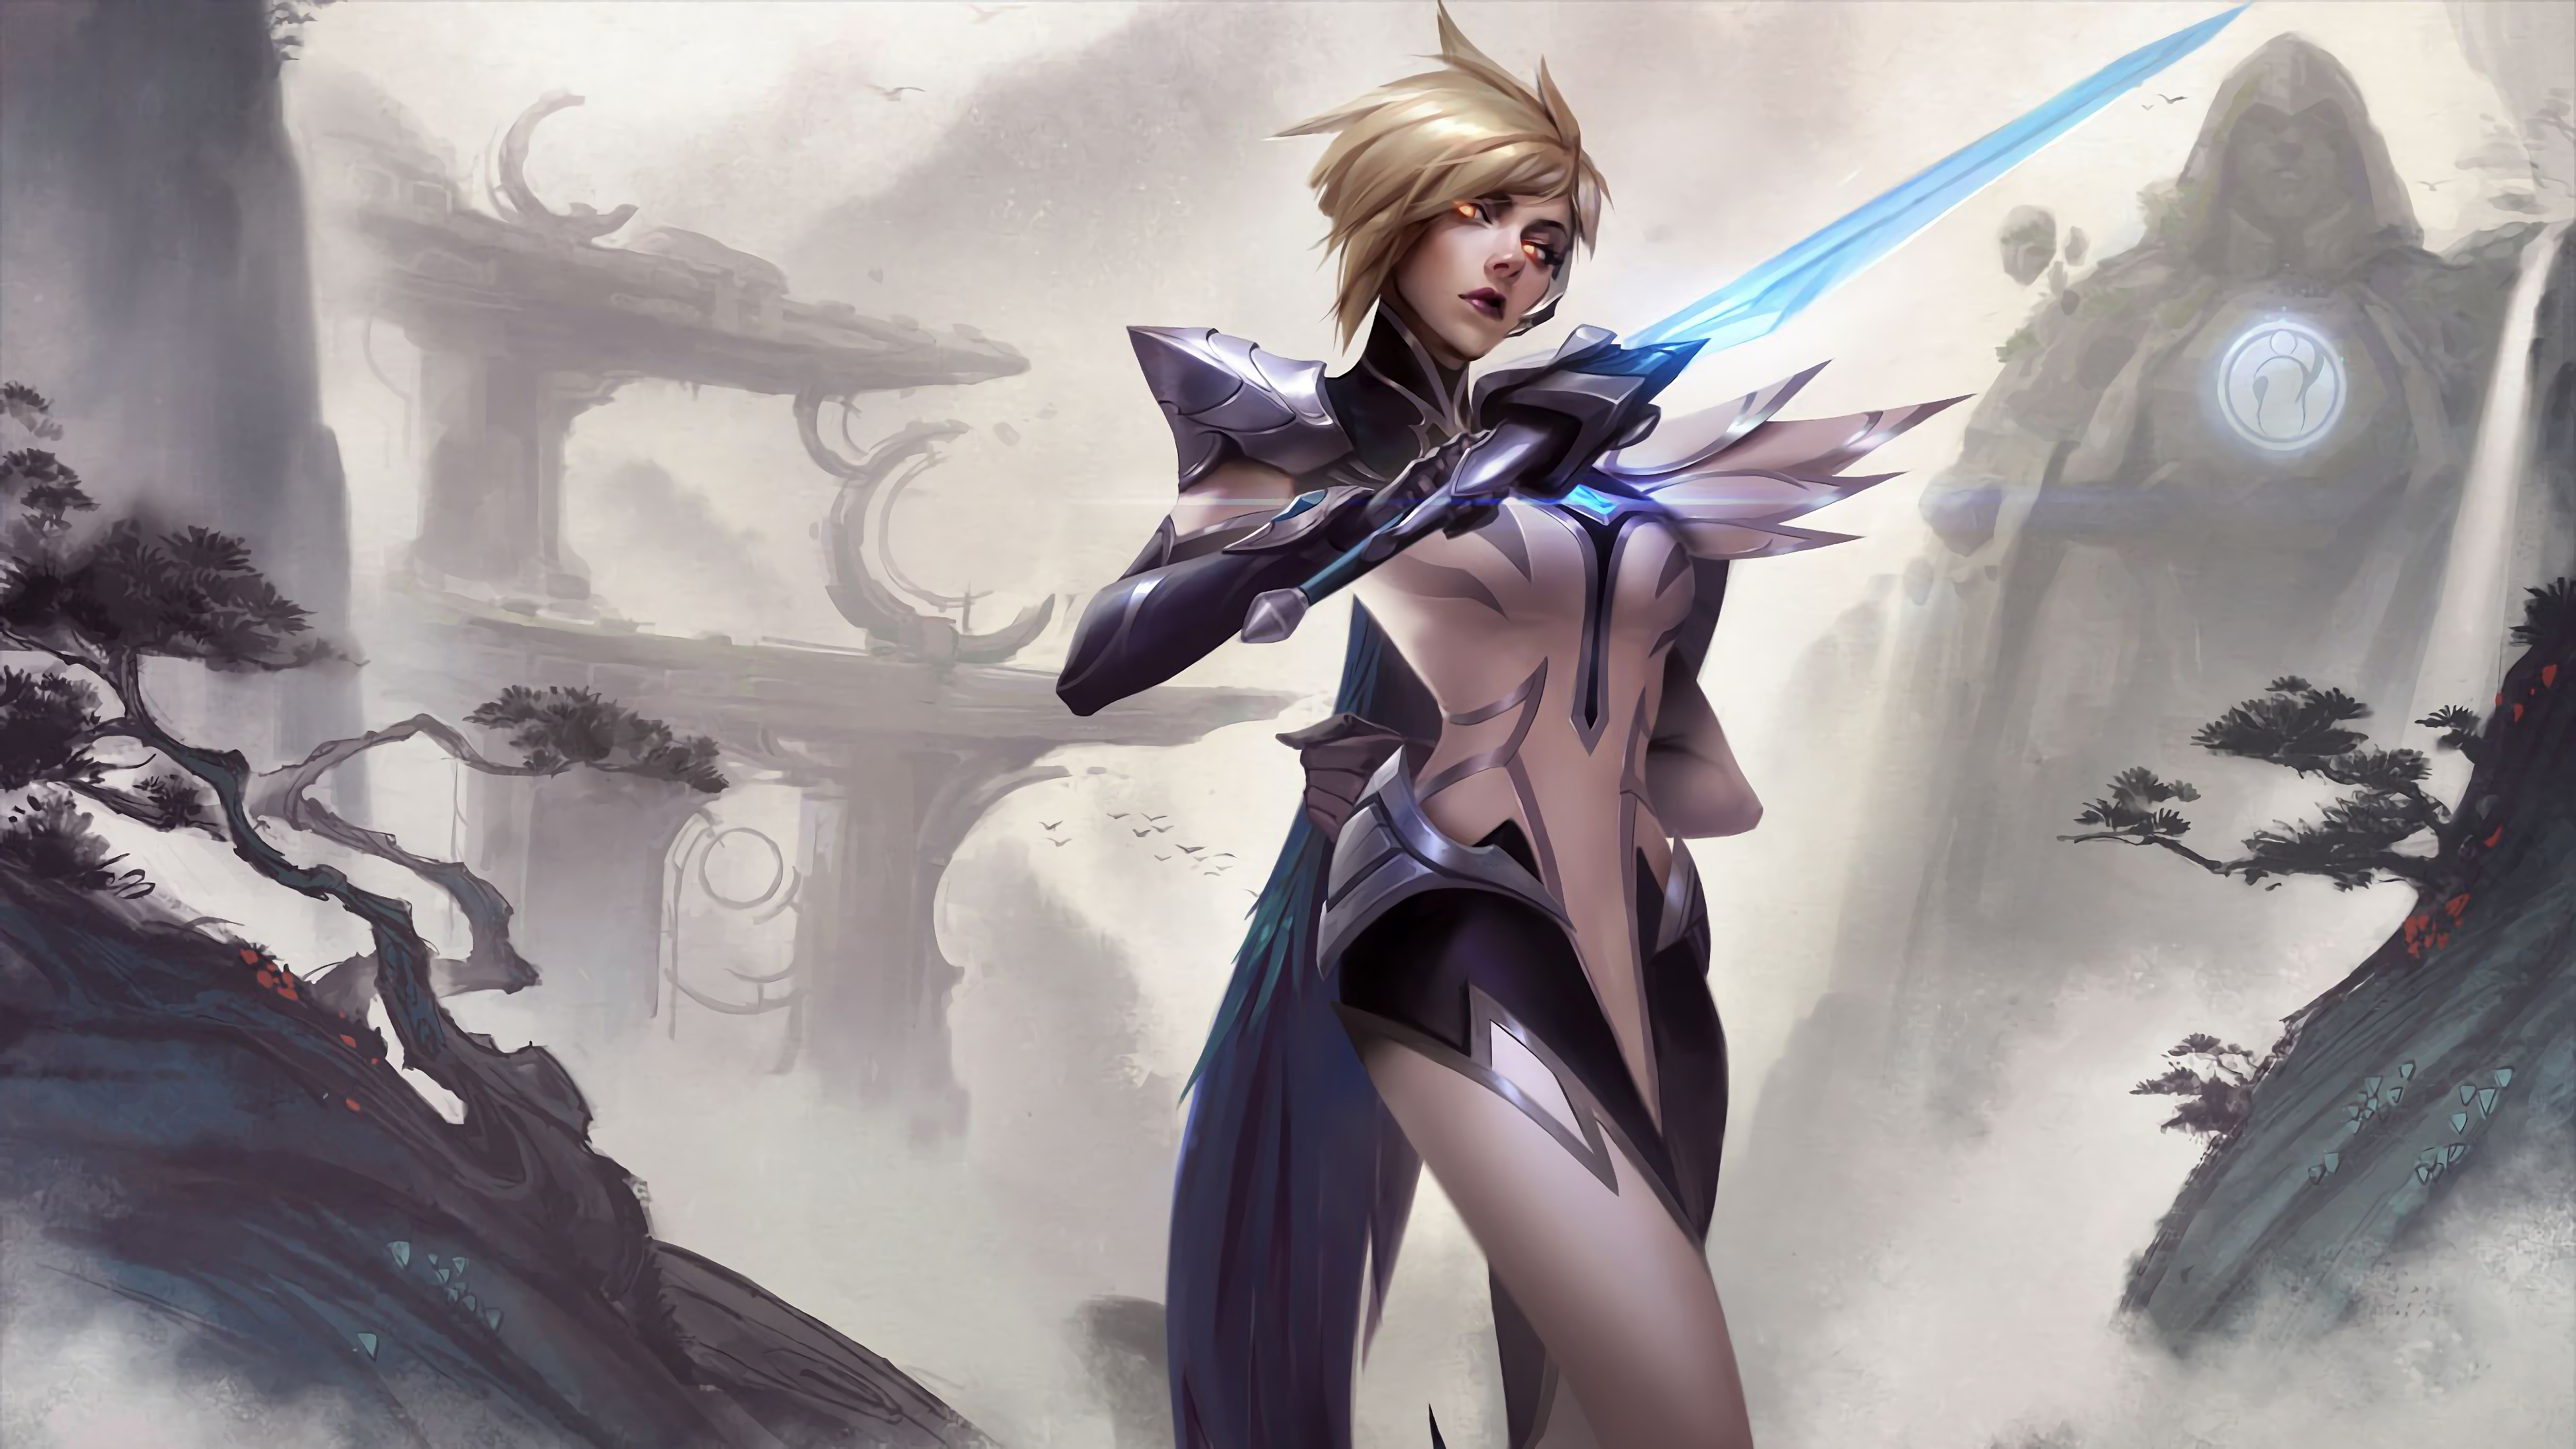 Invictus Gaming Fiora Splash Art Lol 4k Wallpaper 62